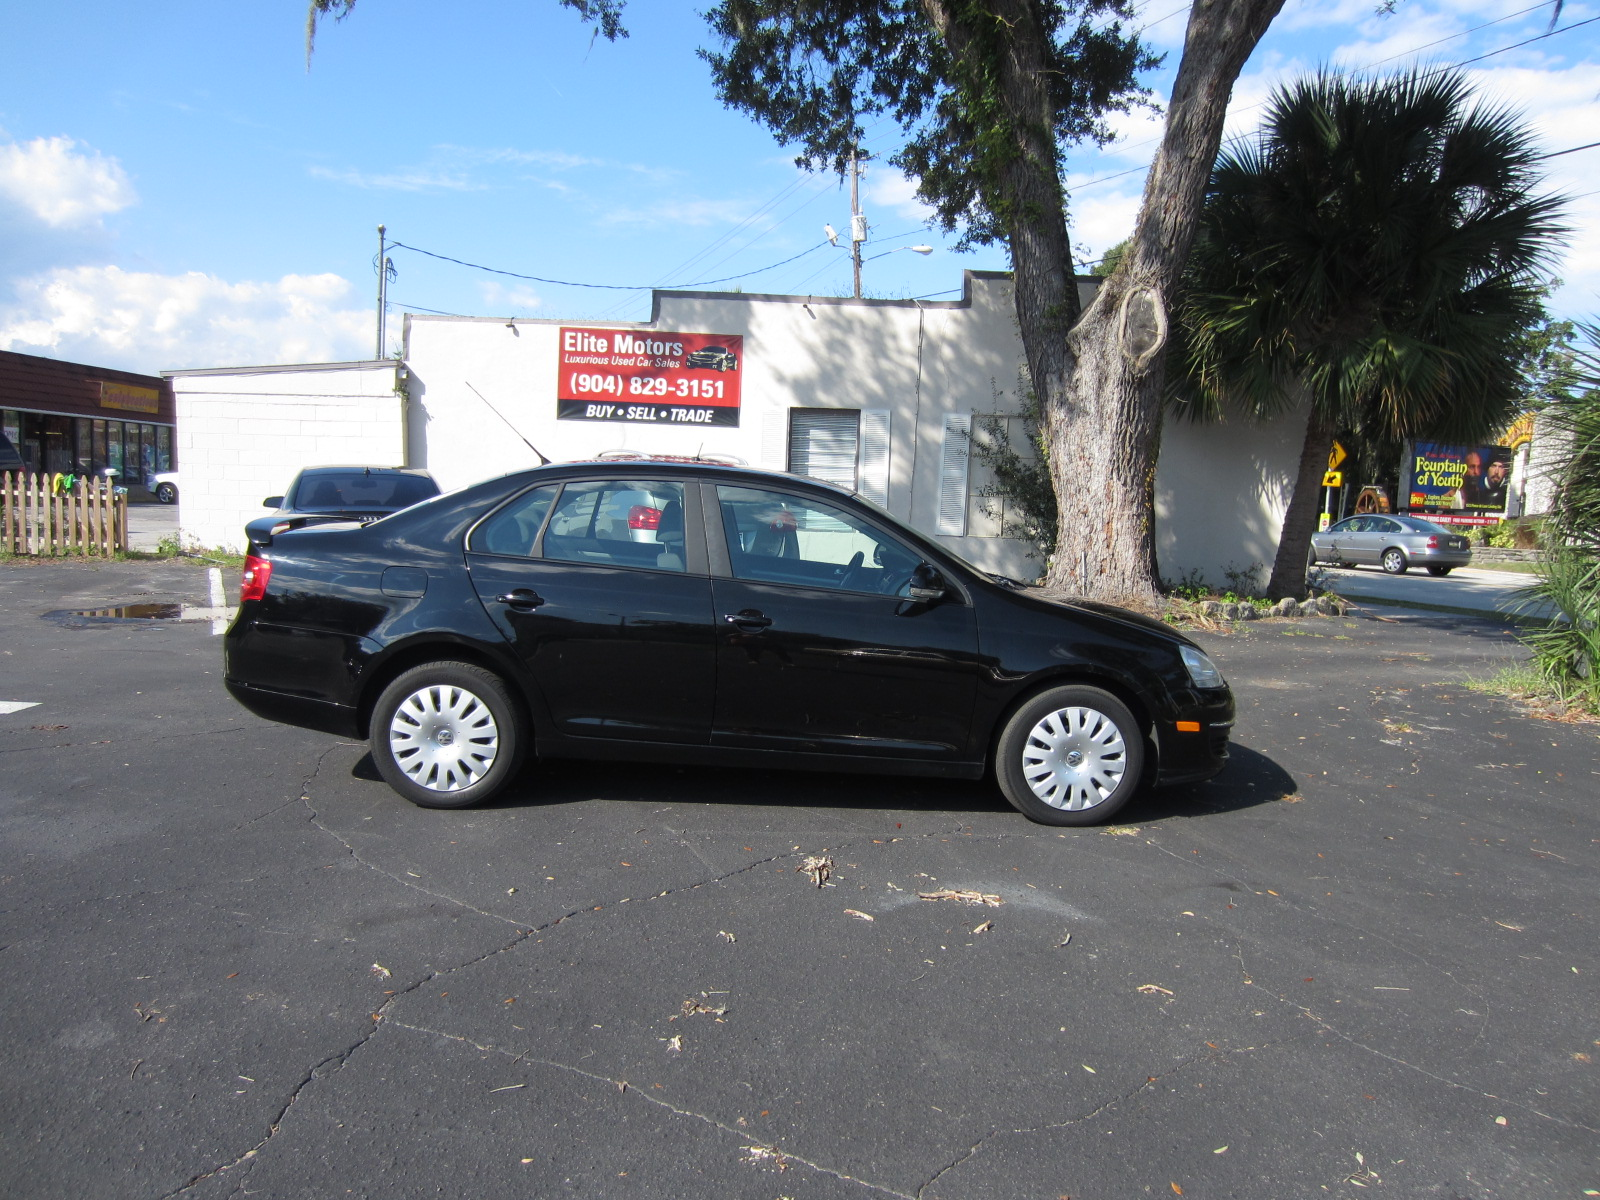 used 2012 volkswagen jetta for sale jacksonville fl autos post. Black Bedroom Furniture Sets. Home Design Ideas